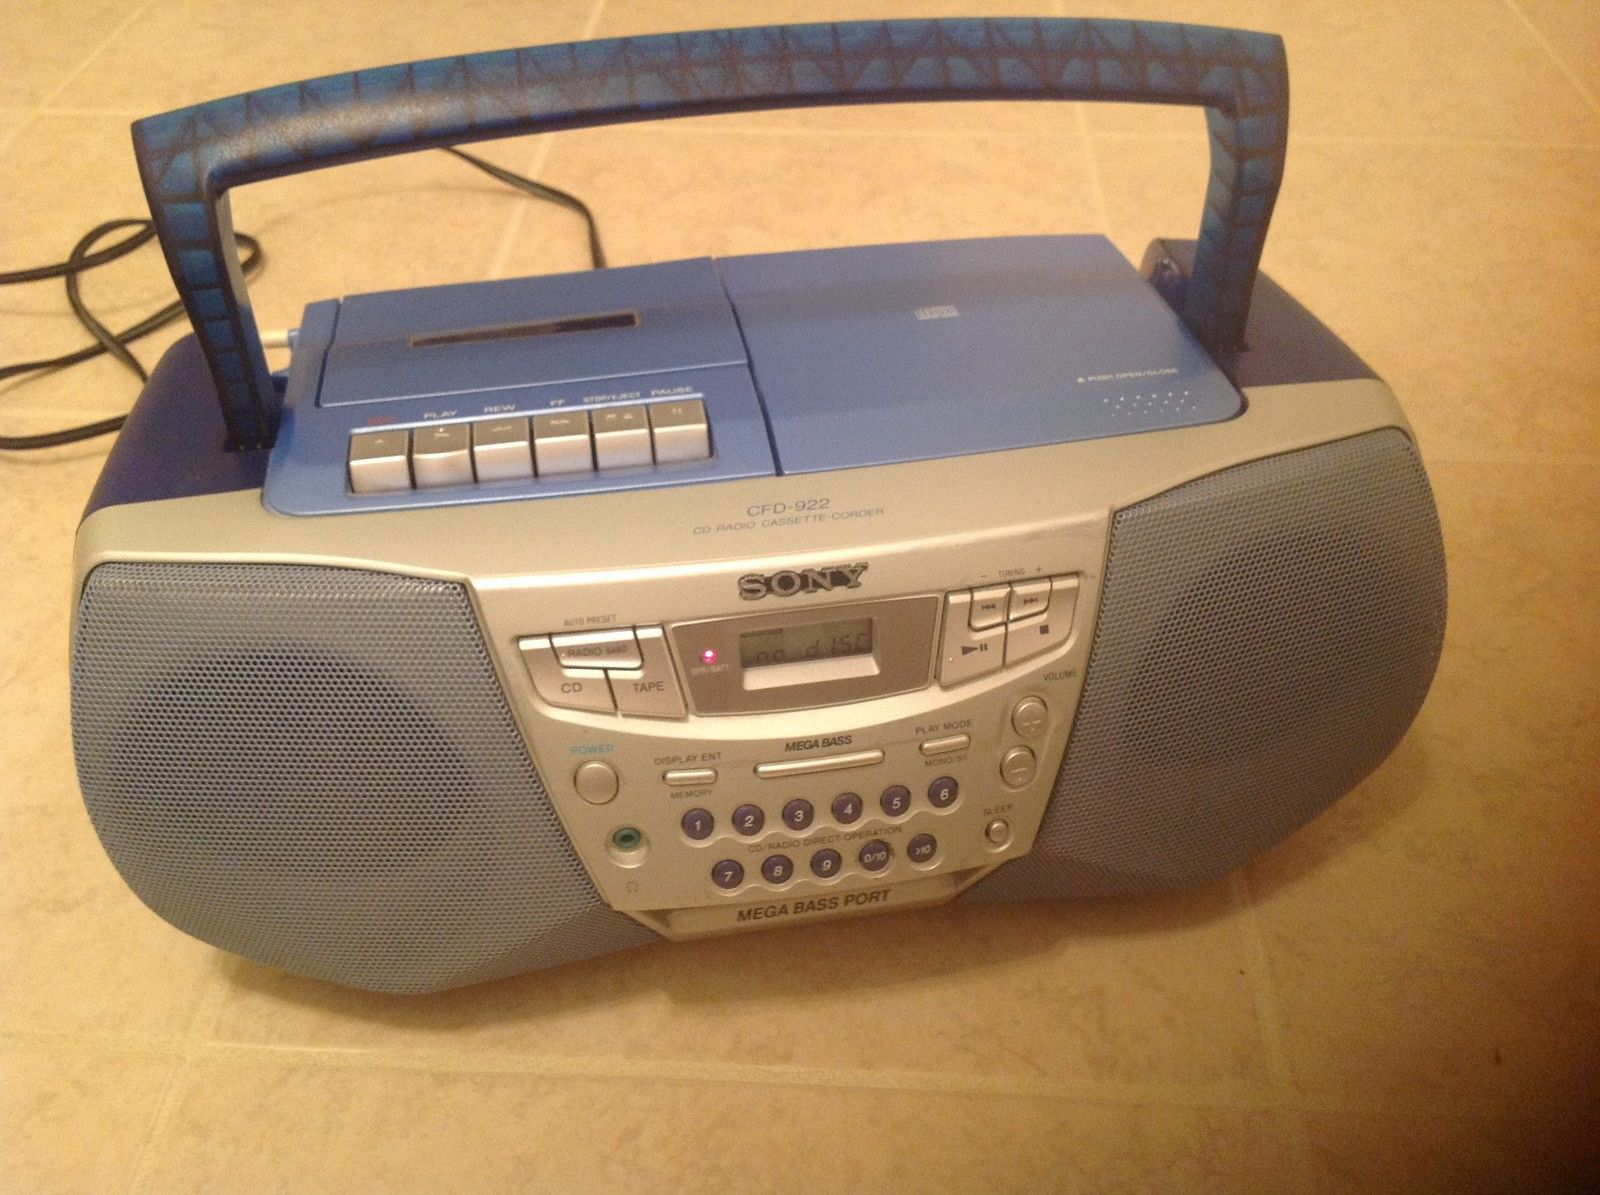 sony cfd 922 cassette cd radio boombox boomboxes. Black Bedroom Furniture Sets. Home Design Ideas